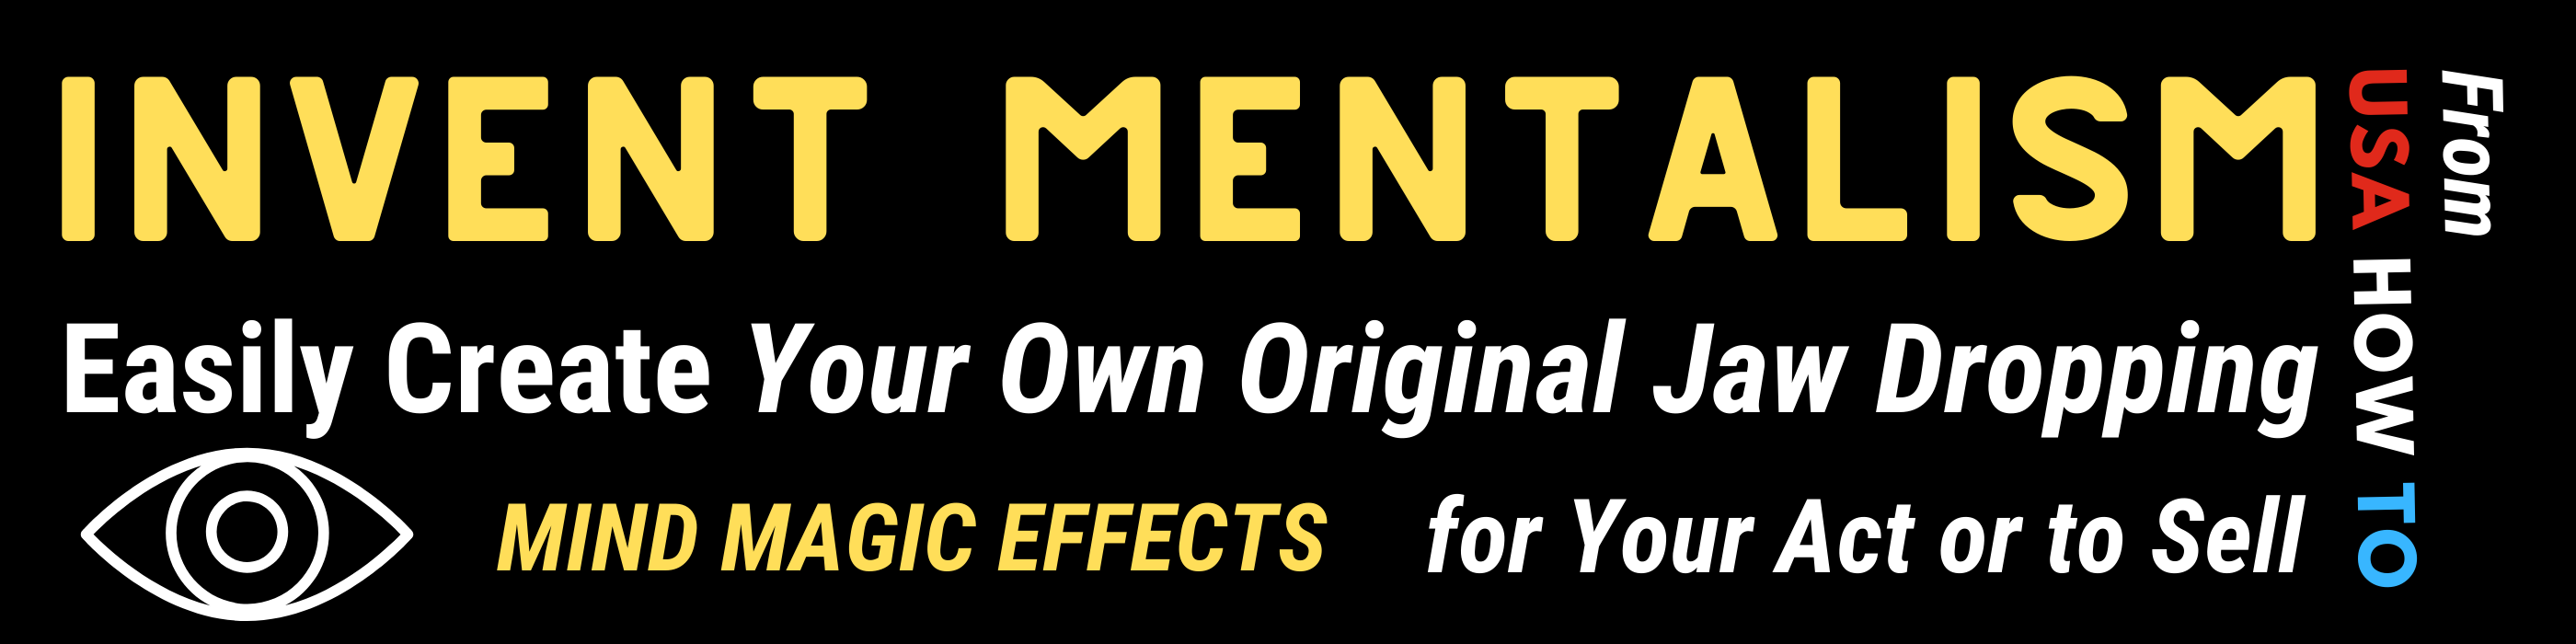 "Invent Mentalism - ""Invent Mentalism"" is the exciting new eBook about inventing your very own mental magic effects for your act or to sell."